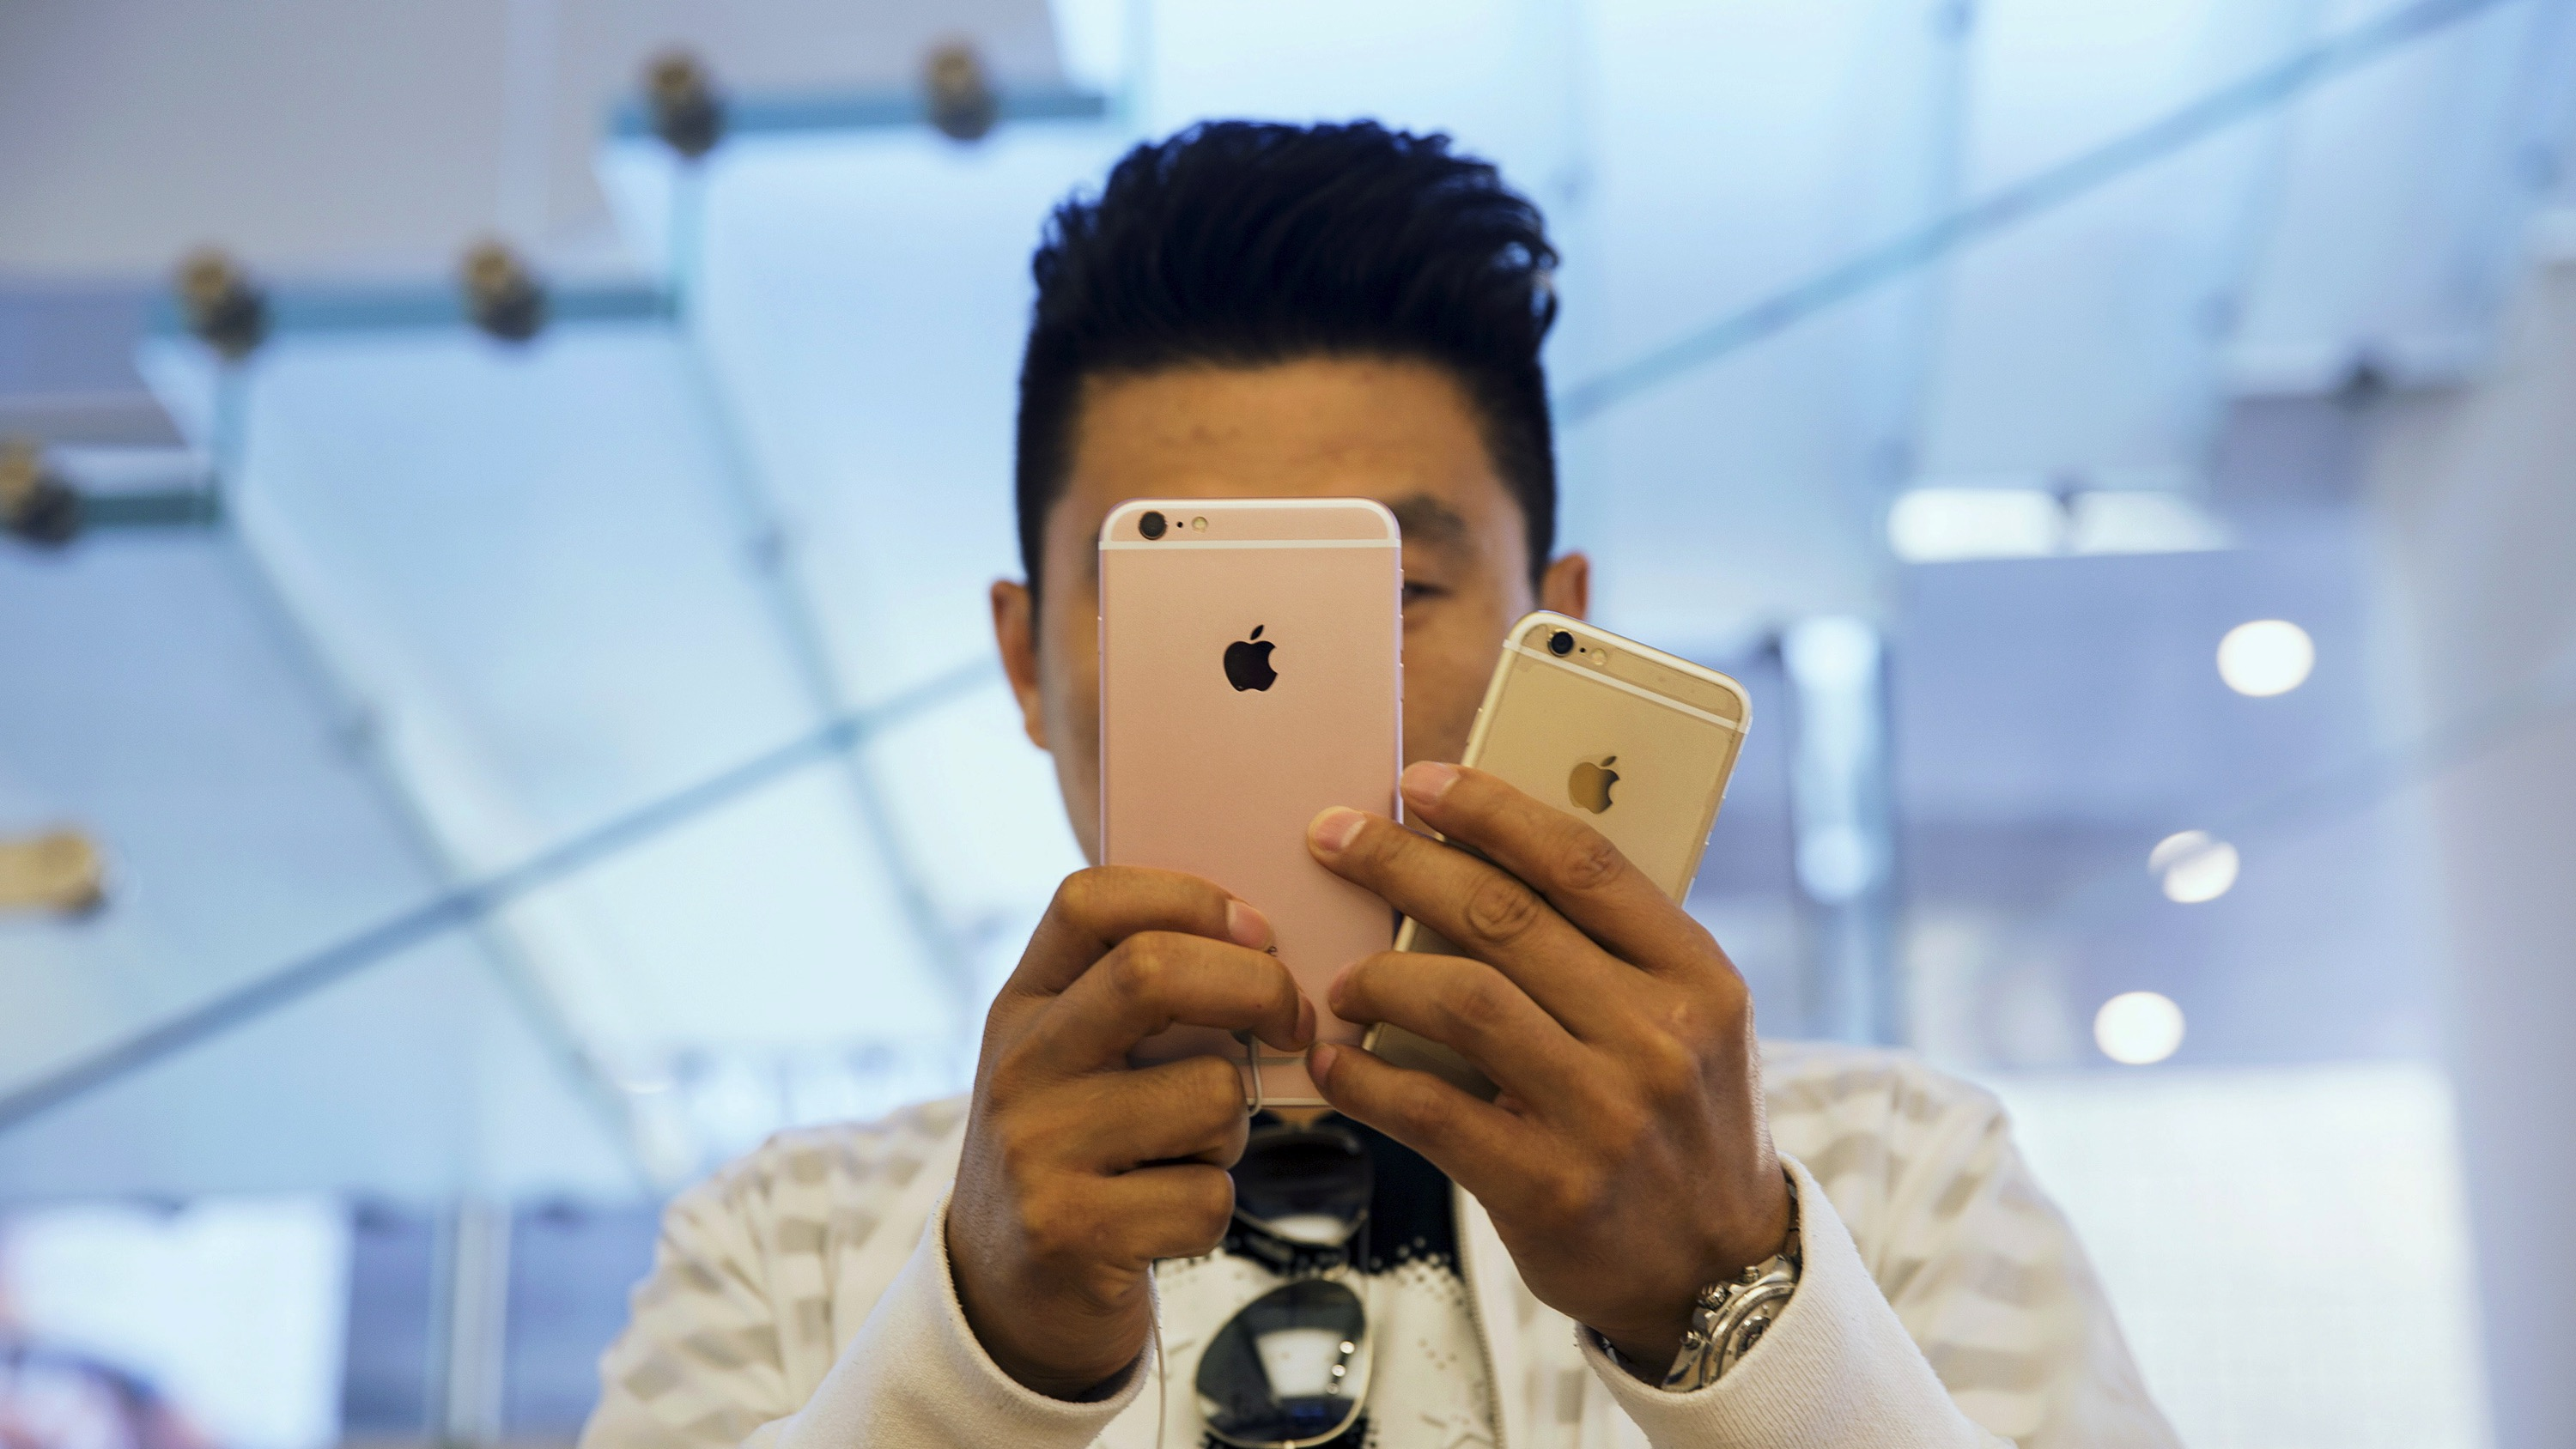 A man takes pictures as Apple iPhone 6s and 6s Plus go on sale at an Apple Store in Beijing, China September 25, 2015. The new iPhone 6s and 6s Plus arrived in stores and at consumers' doorsteps on Friday, kicking off a sales cycle that will be scrutinized for signs of how much juice Apple's marquee product has left.  REUTERS/Damir Sagolj - RTX1SCZI